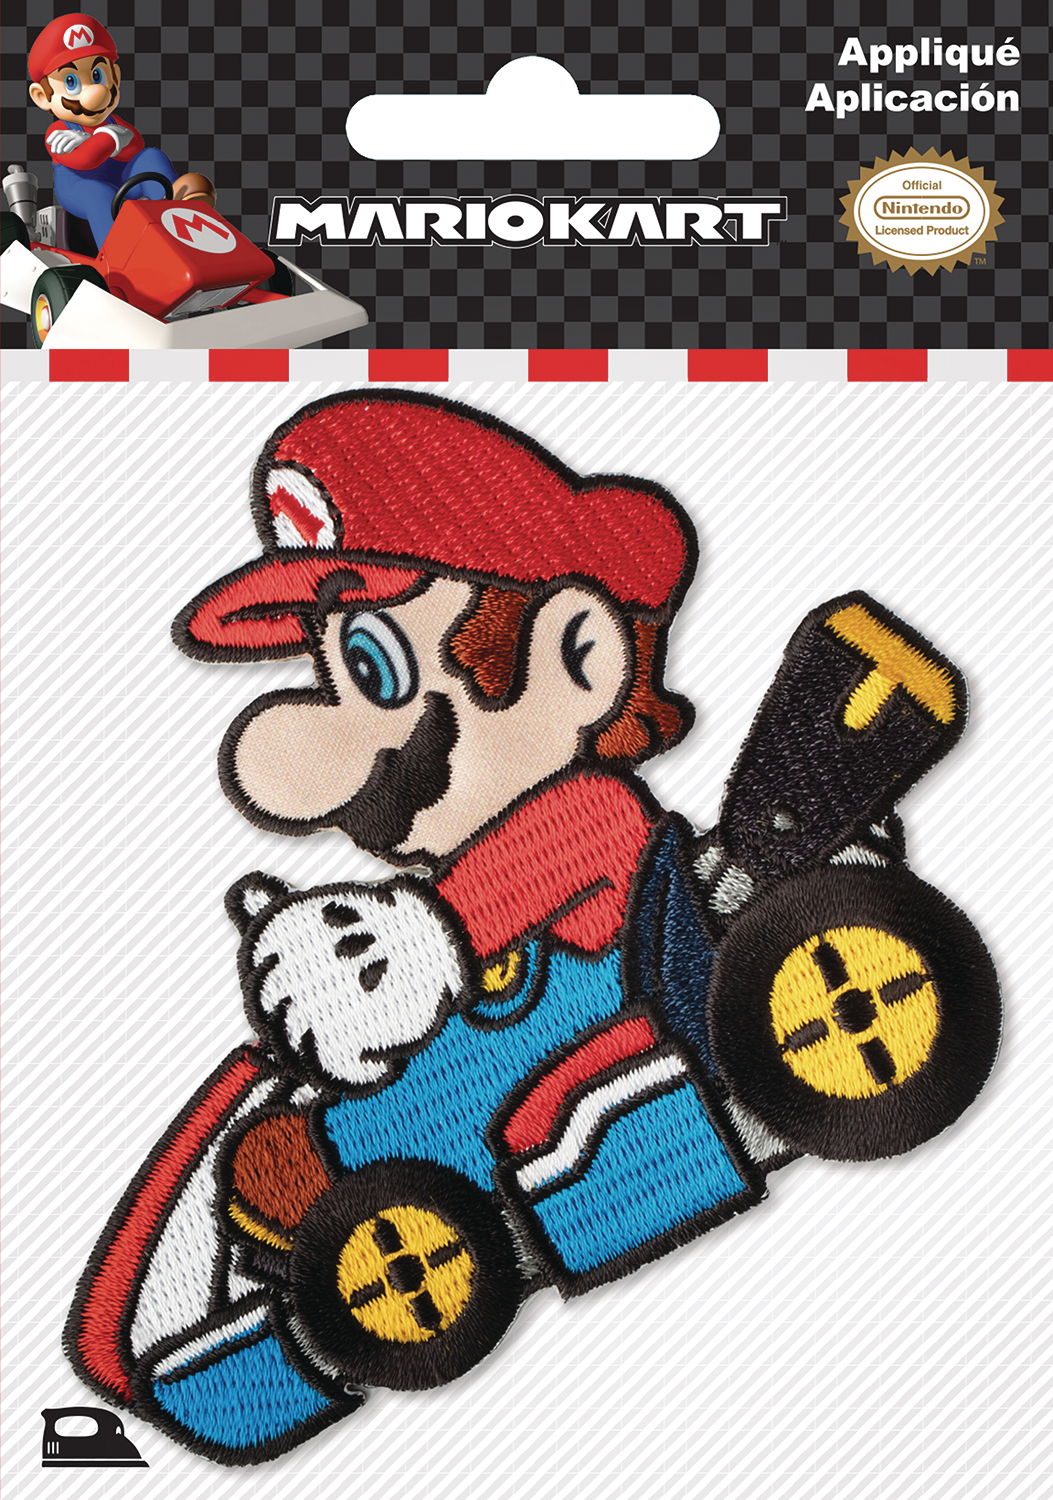 NINTENDO MARIO KART FLAG PATCH